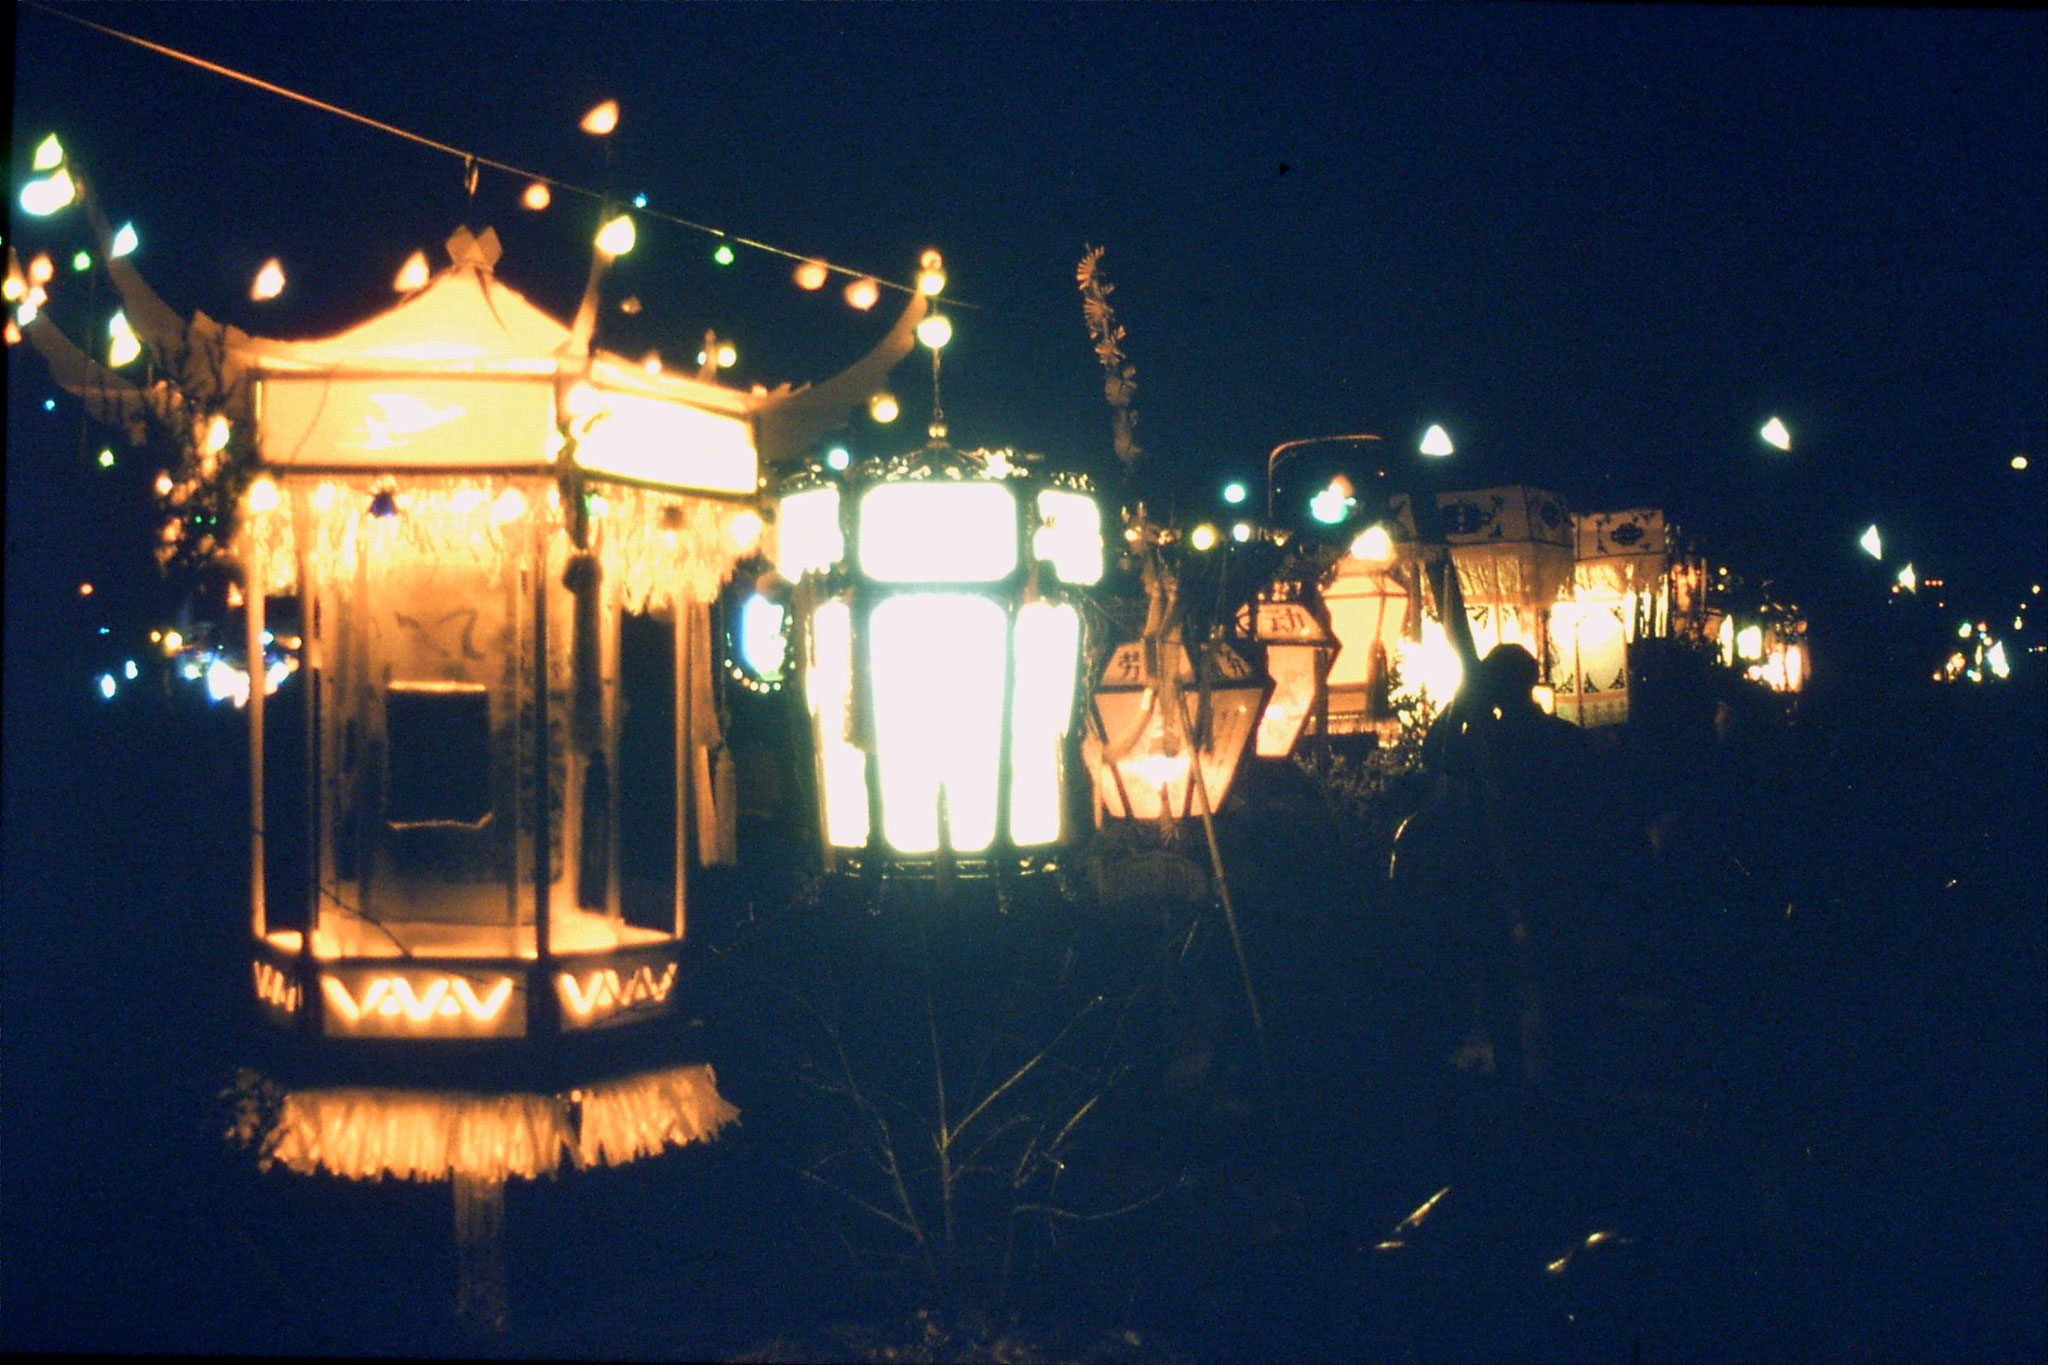 20/2/1989: 31: Qufu New Year lanterns